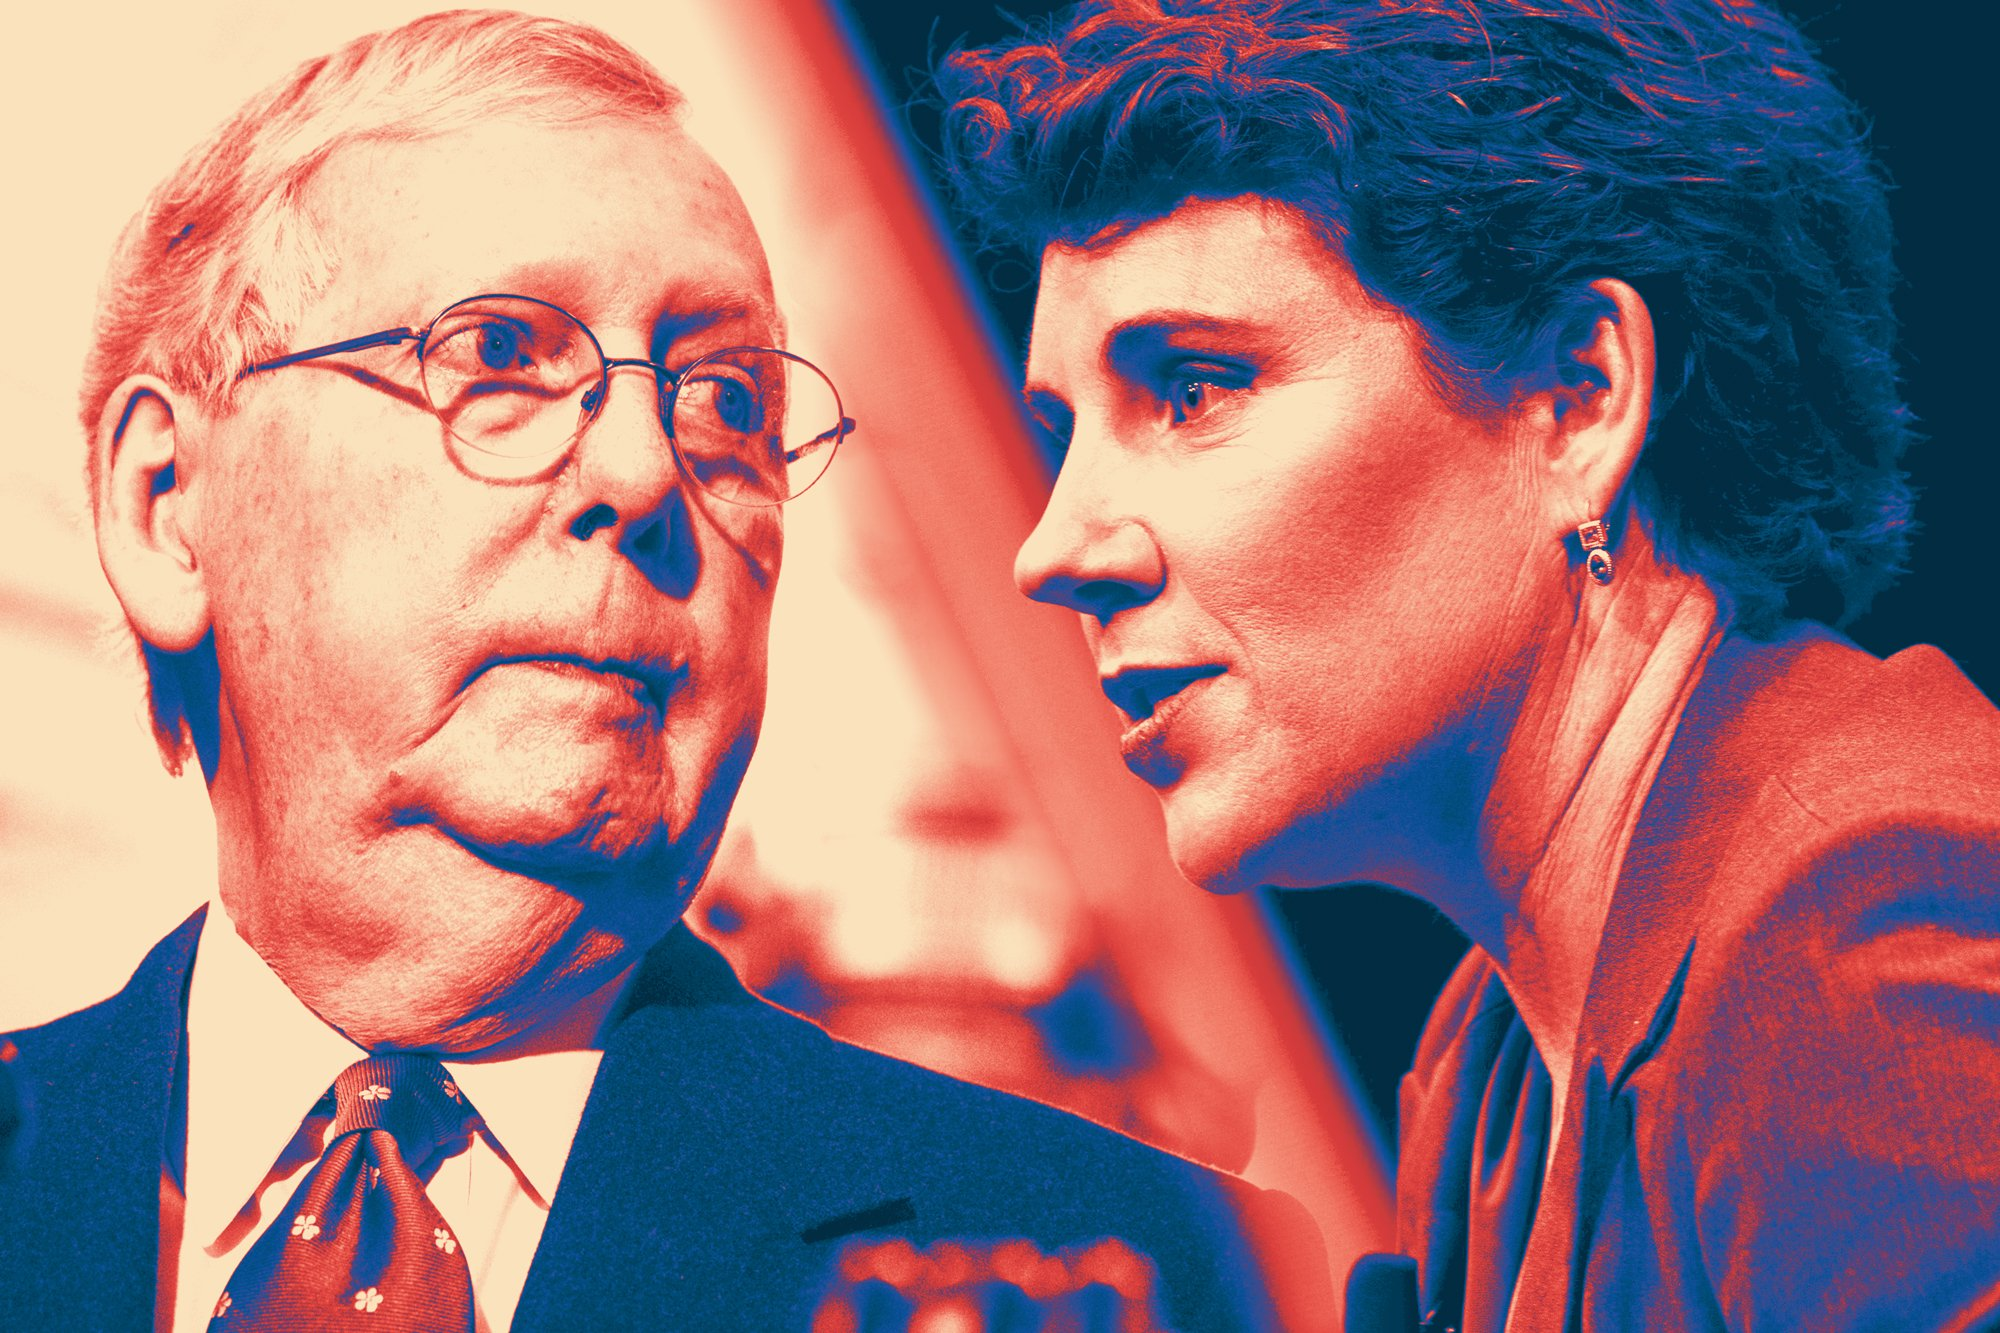 The Mitch McConnell vs. Amy McGrath Show, and the political ad spending story so far